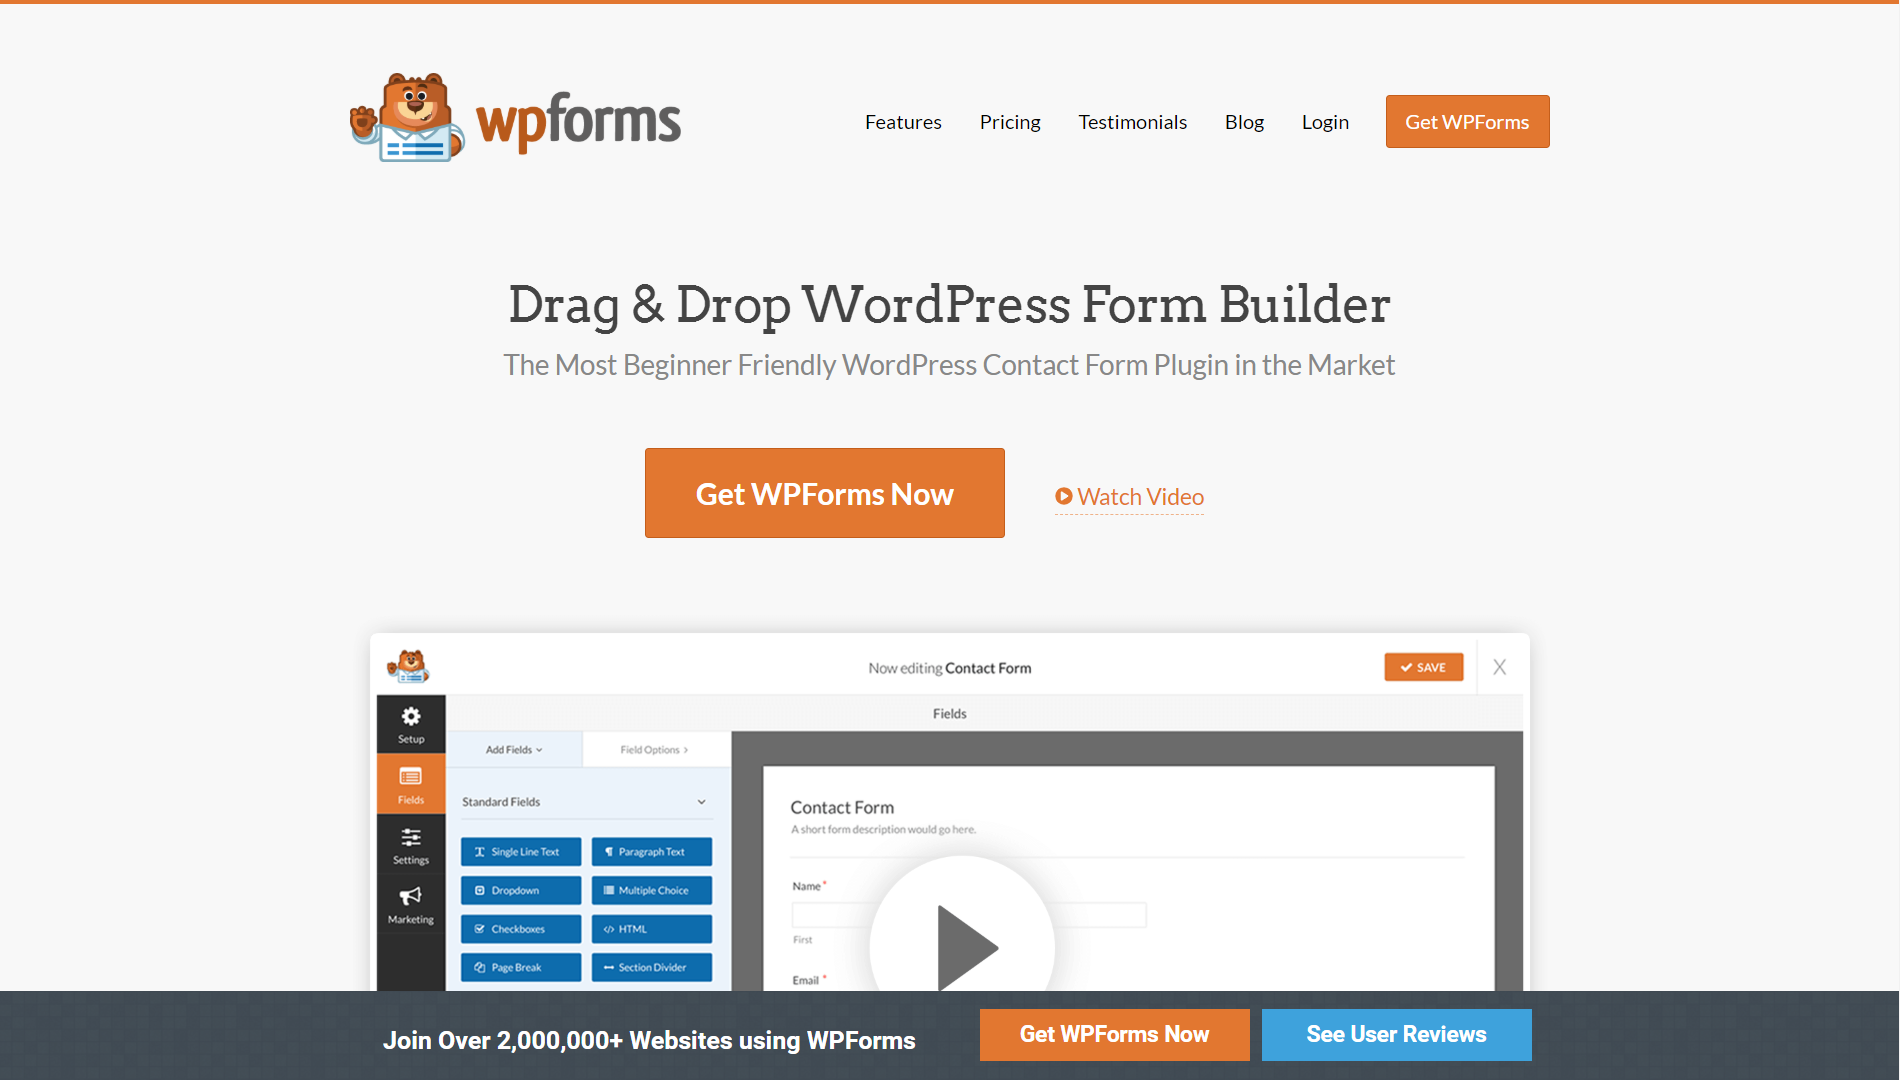 The homepage of WPForms